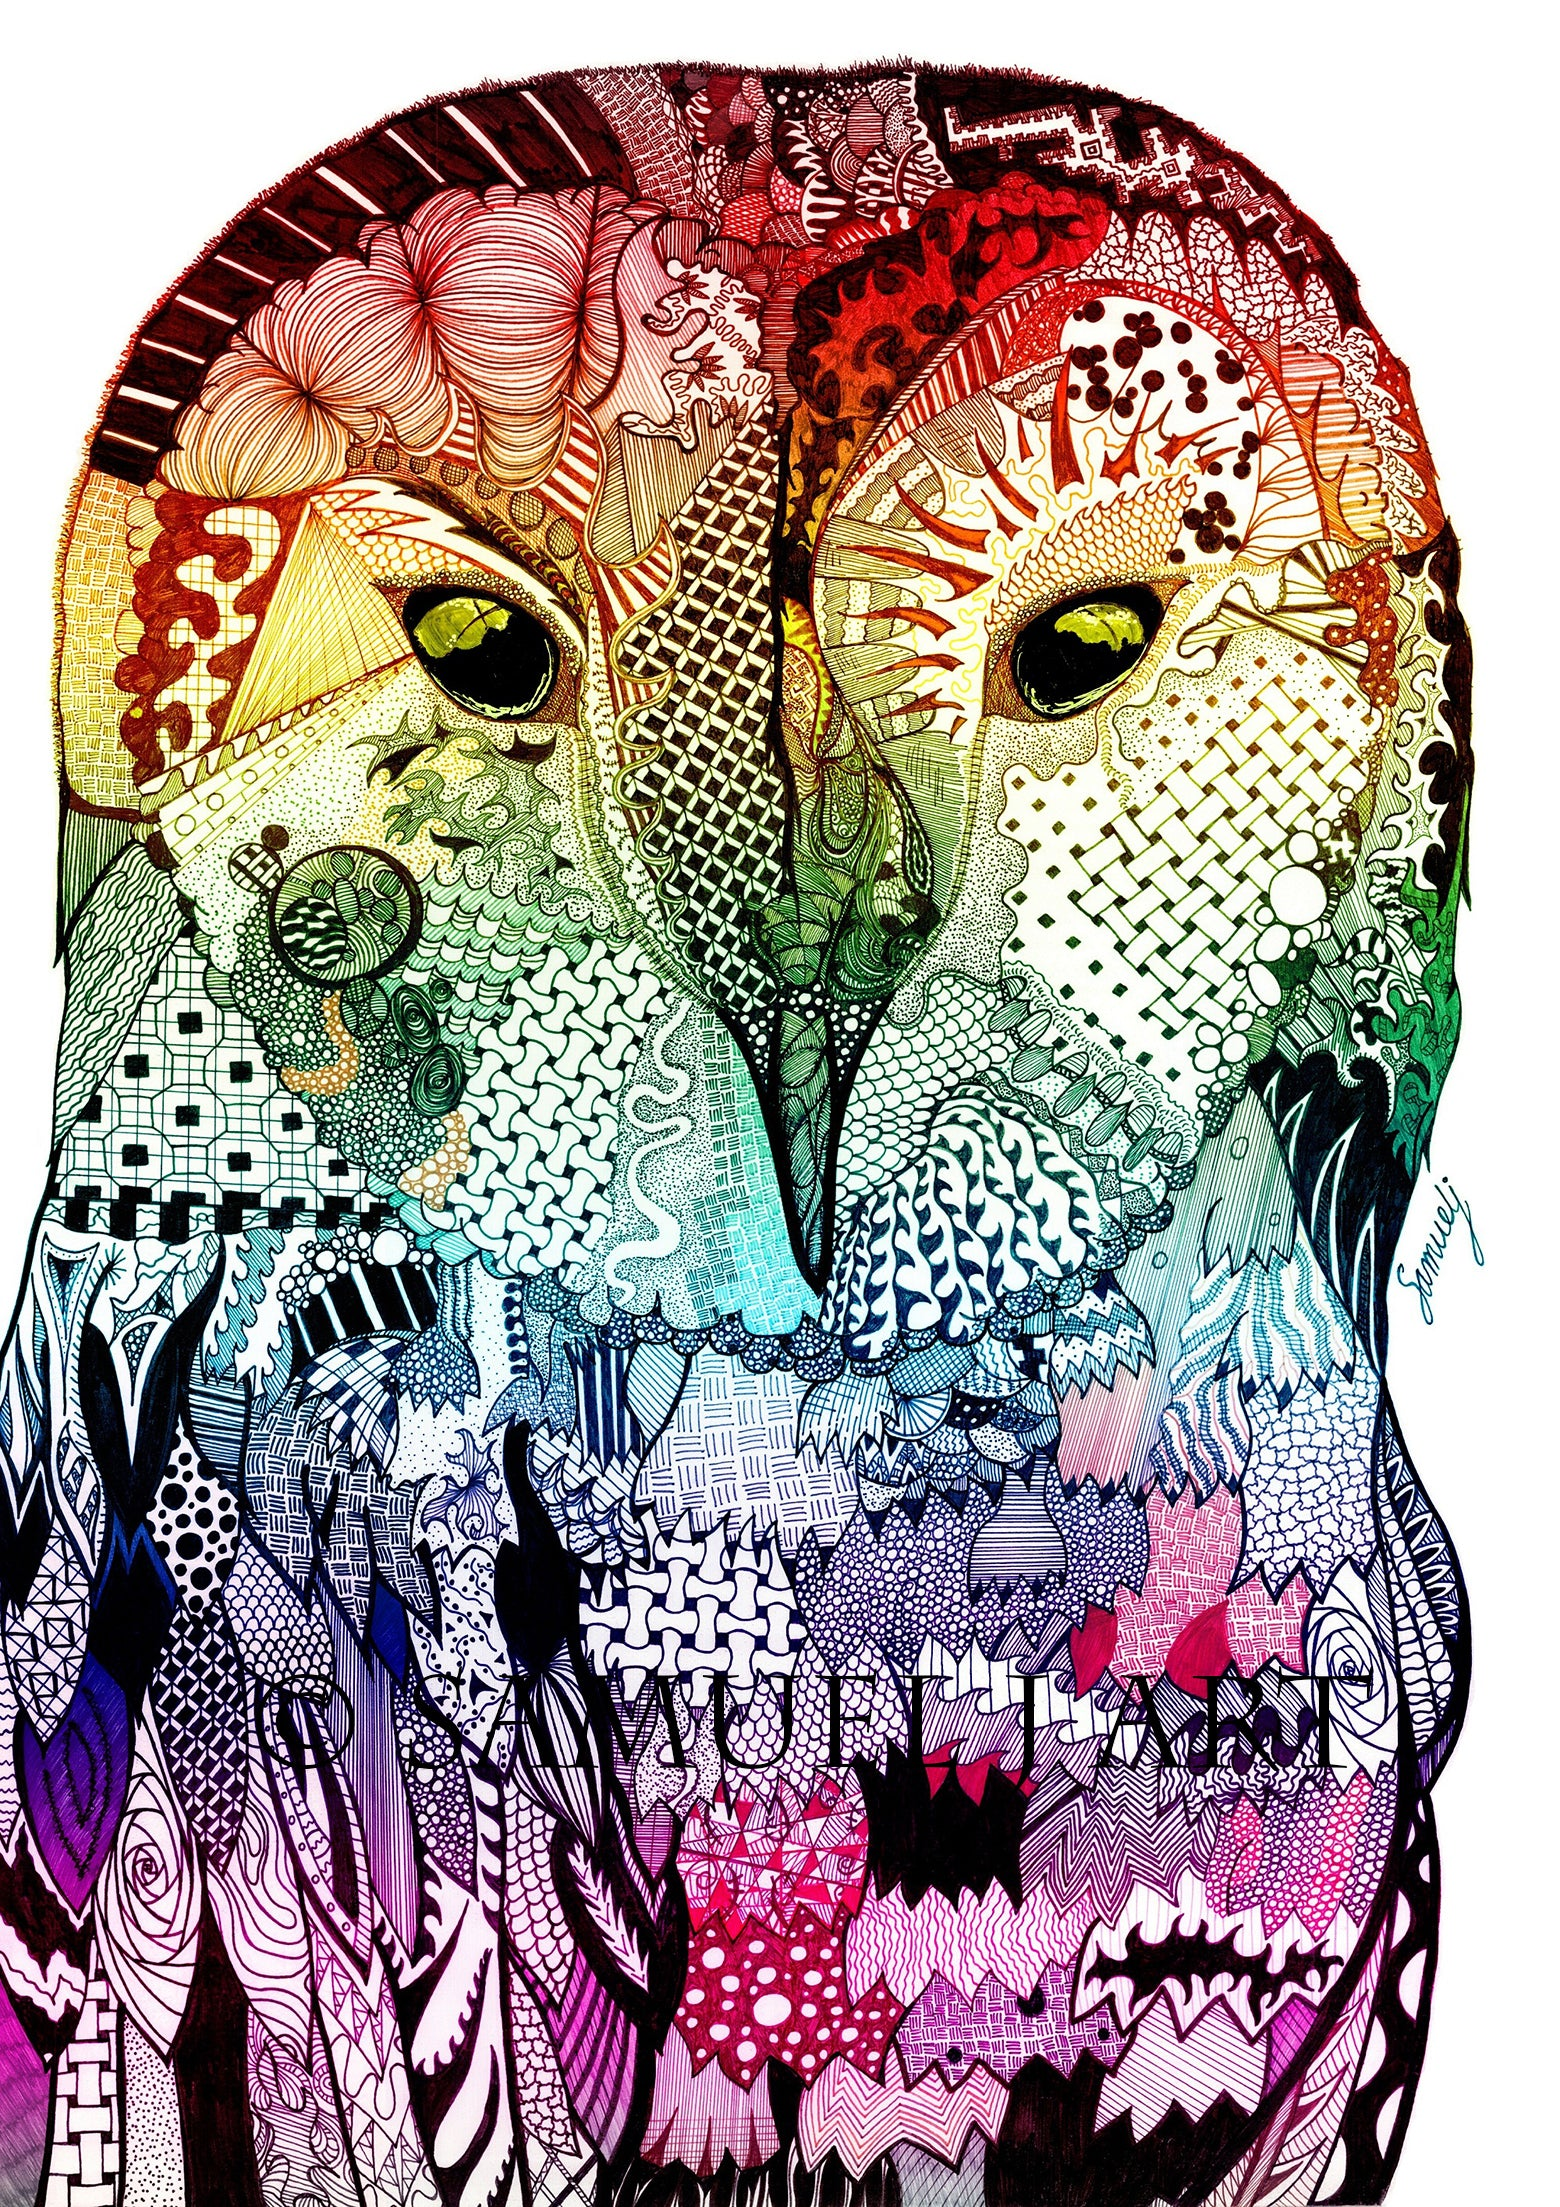 Multi-Coloured Wise Owl - Prints